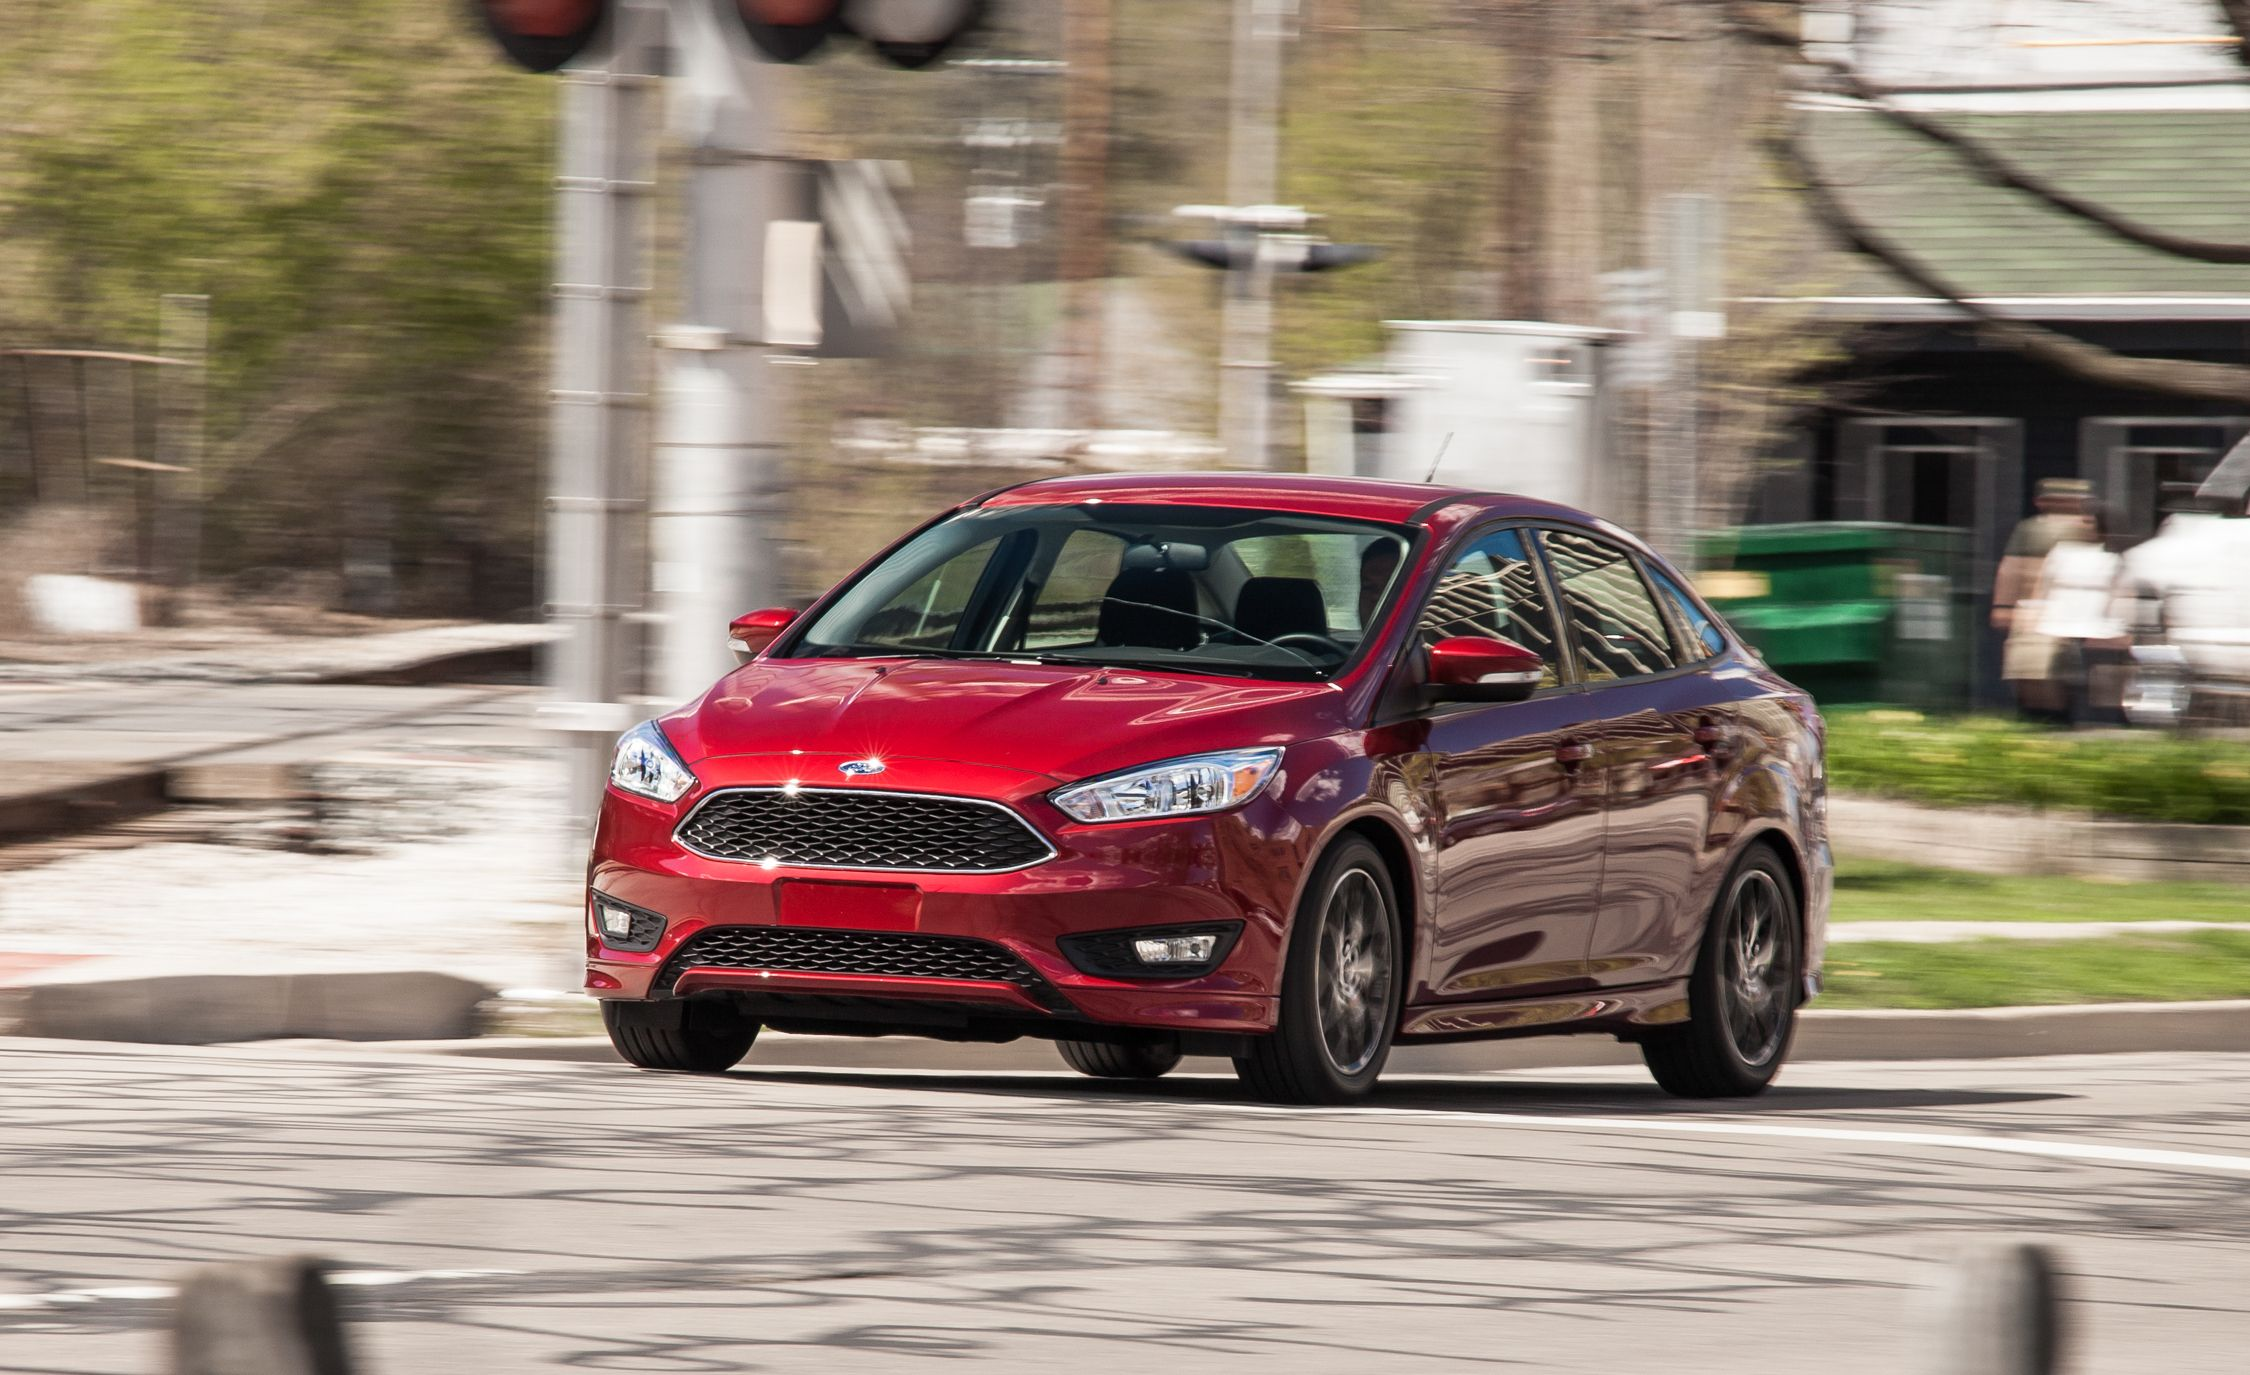 2015 Ford Focus 1.0L EcoBoost - Slide 1 & 2016 Ford Focus sedan Pictures | Photo Gallery | Car and Driver markmcfarlin.com